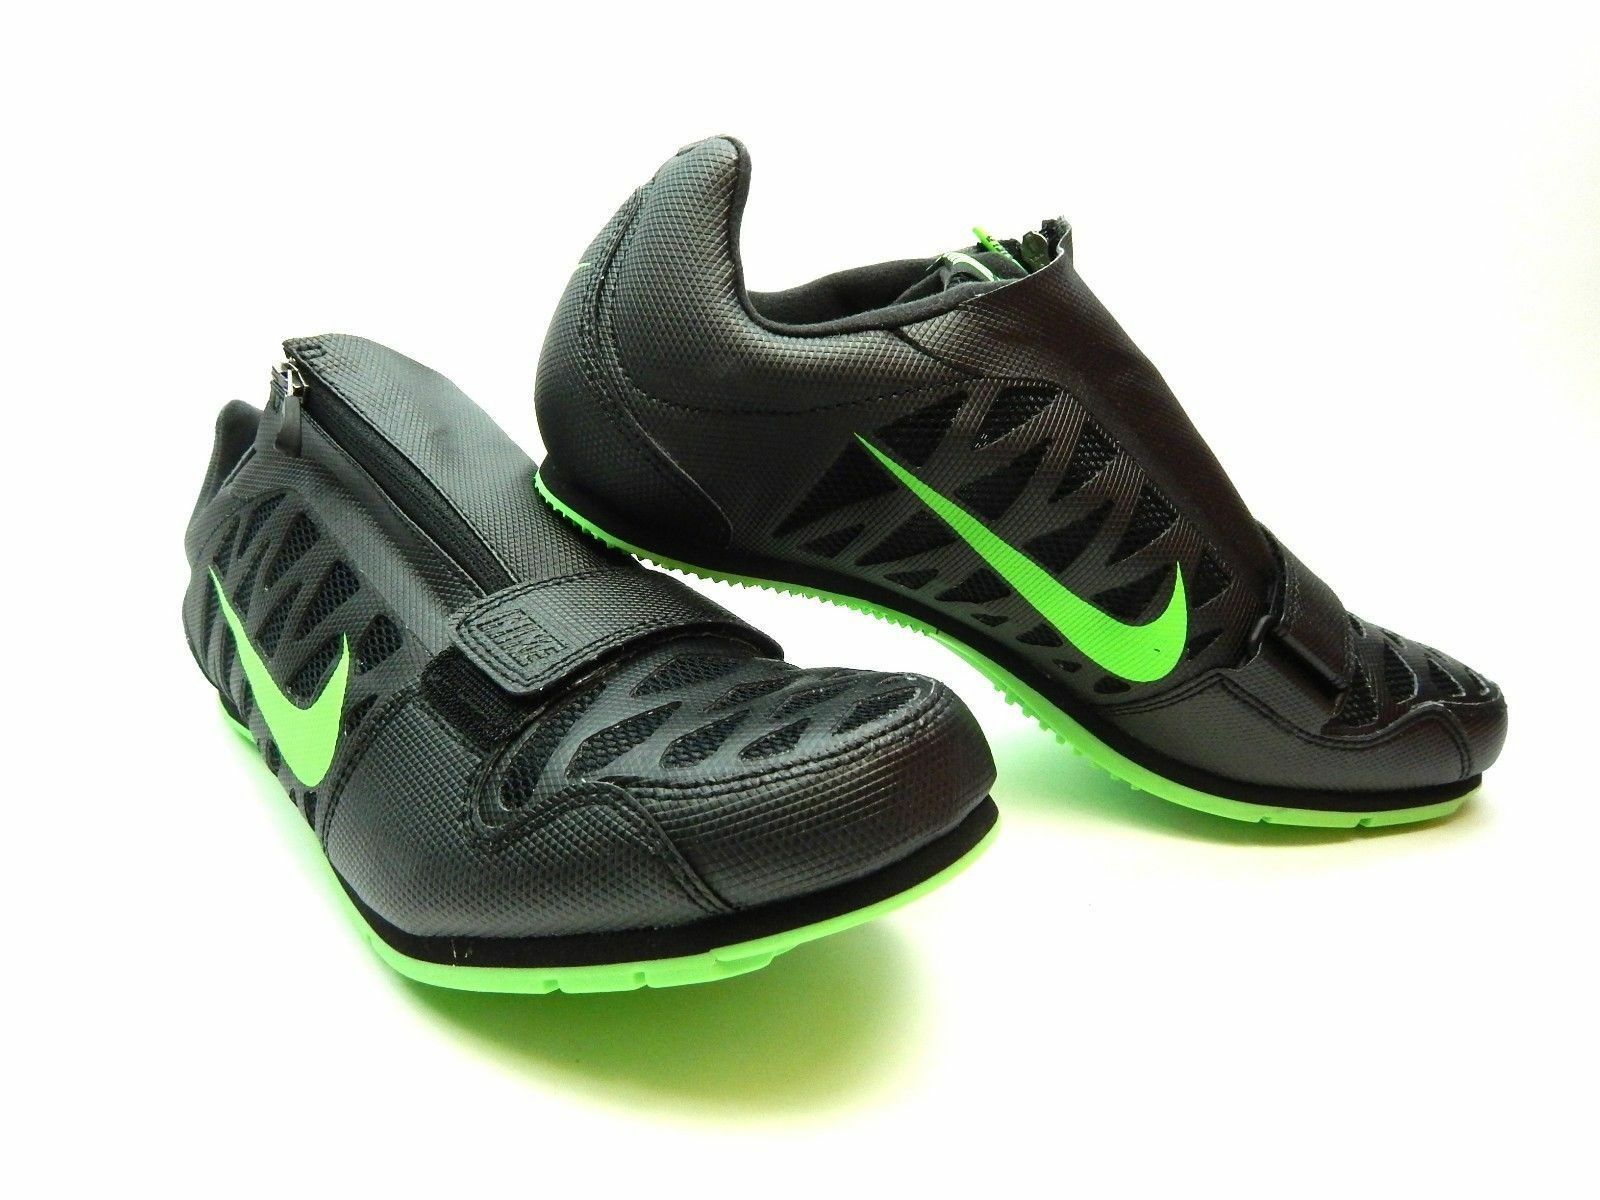 Nike Zoom Long Jump LJ IV Homme Long Jump Chaussures- Style 415339-035 MSRP